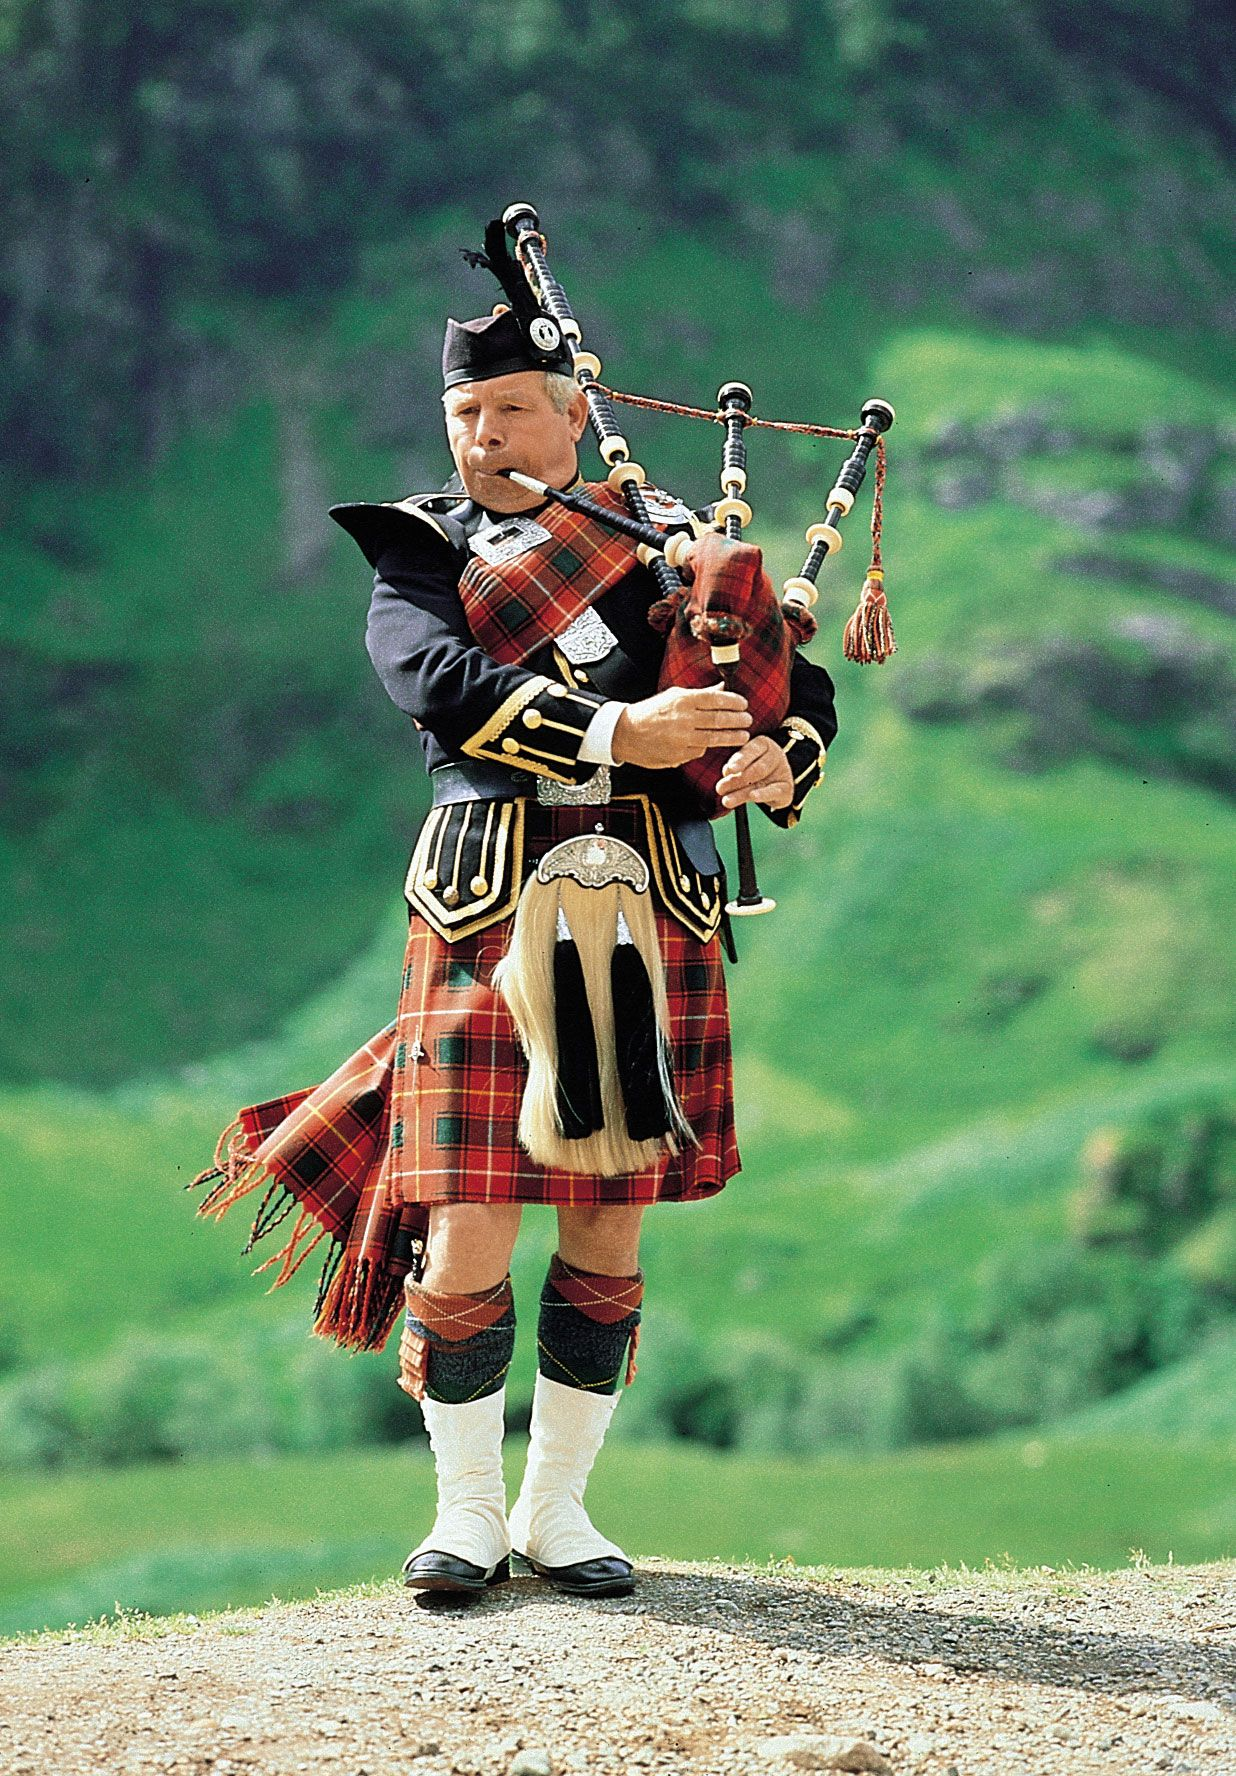 The Very Best Scottish Bagpipe Music | Kilts, Scotland and Plays